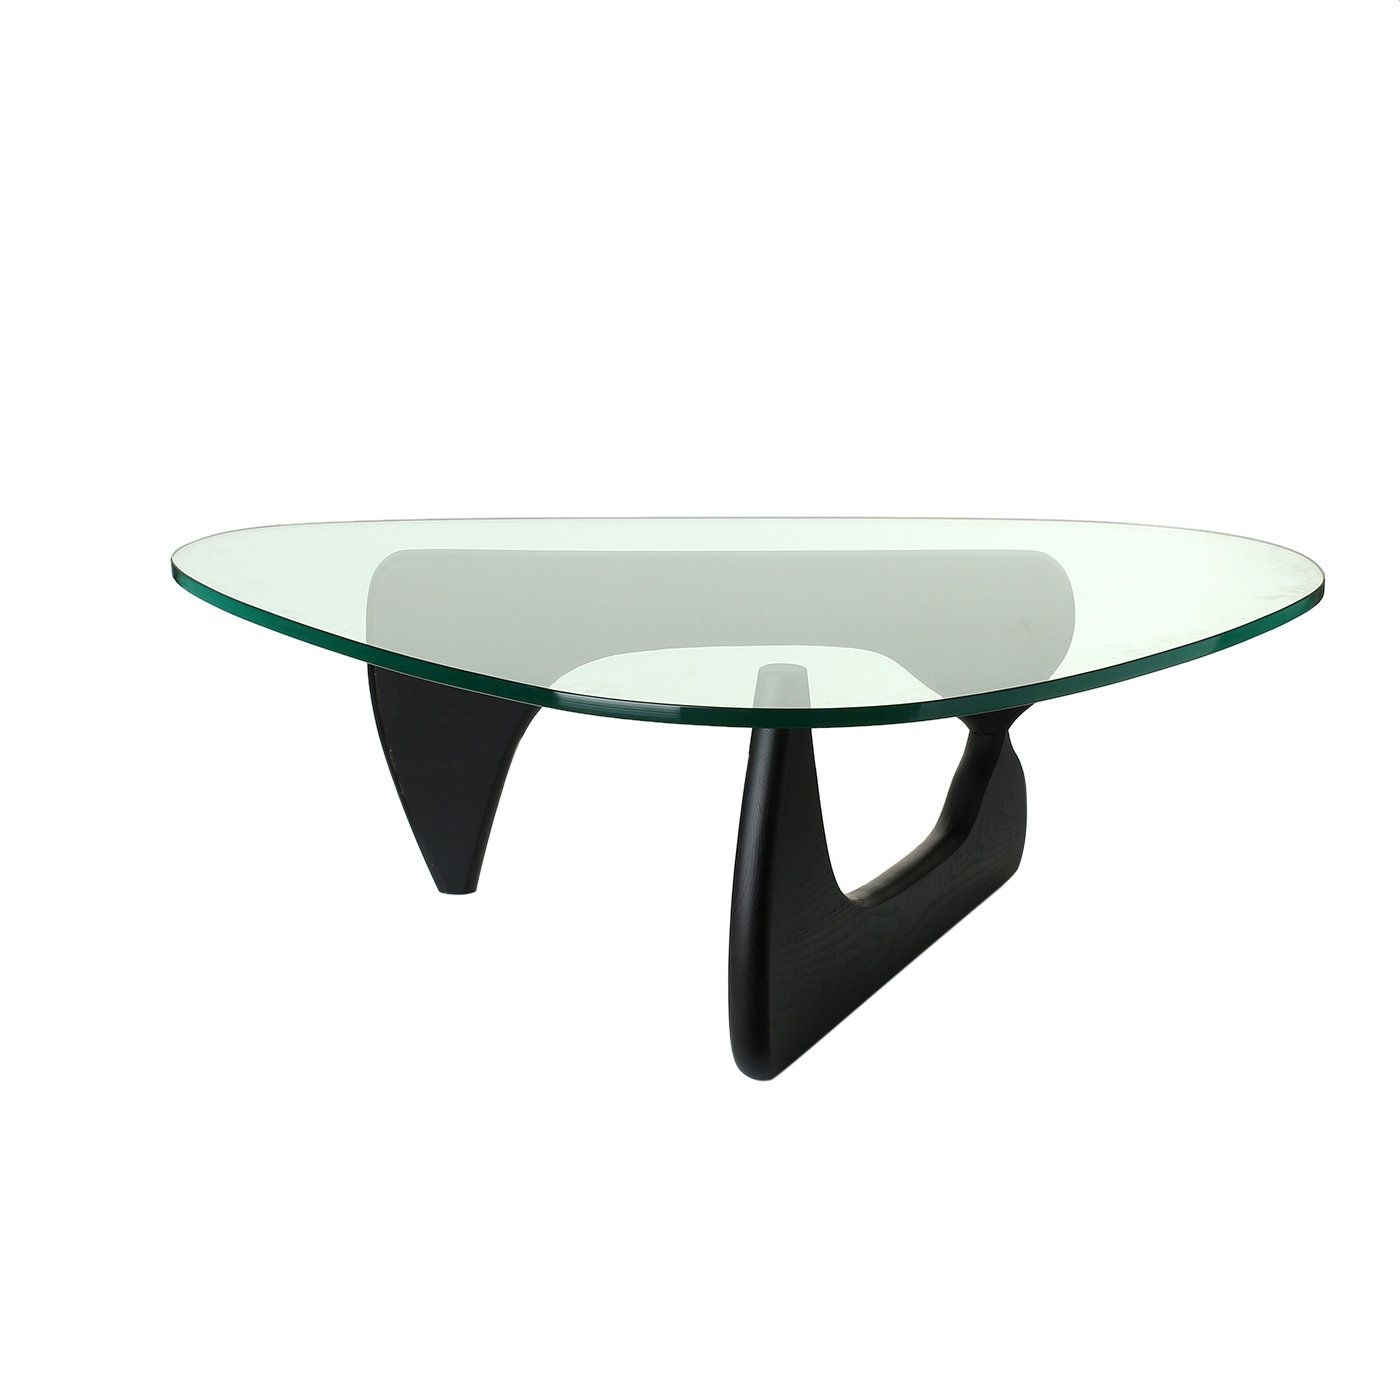 Noguchi Coffee Table Noguchi Coffee Table Oval Coffee Tables